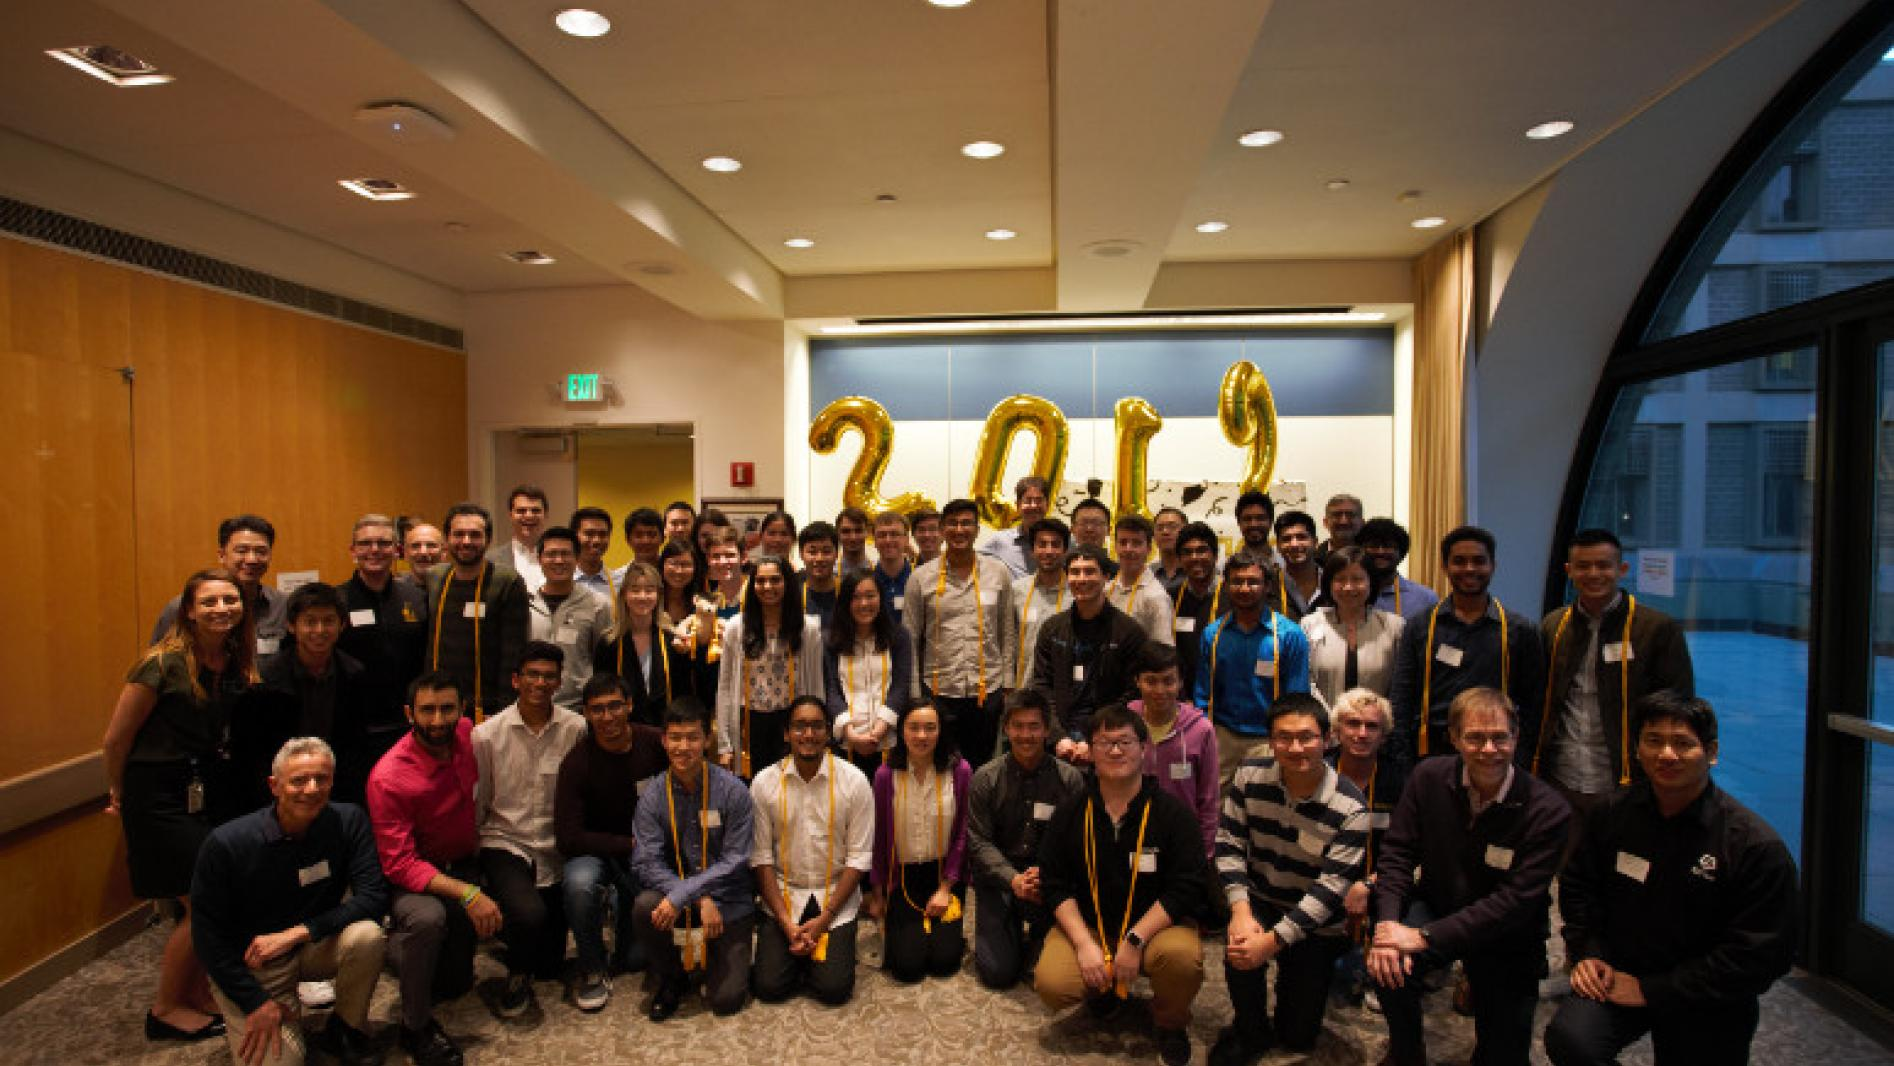 Group photos from the Honors Program Alumni Dinner & Graduation Celebration on April 17 2019